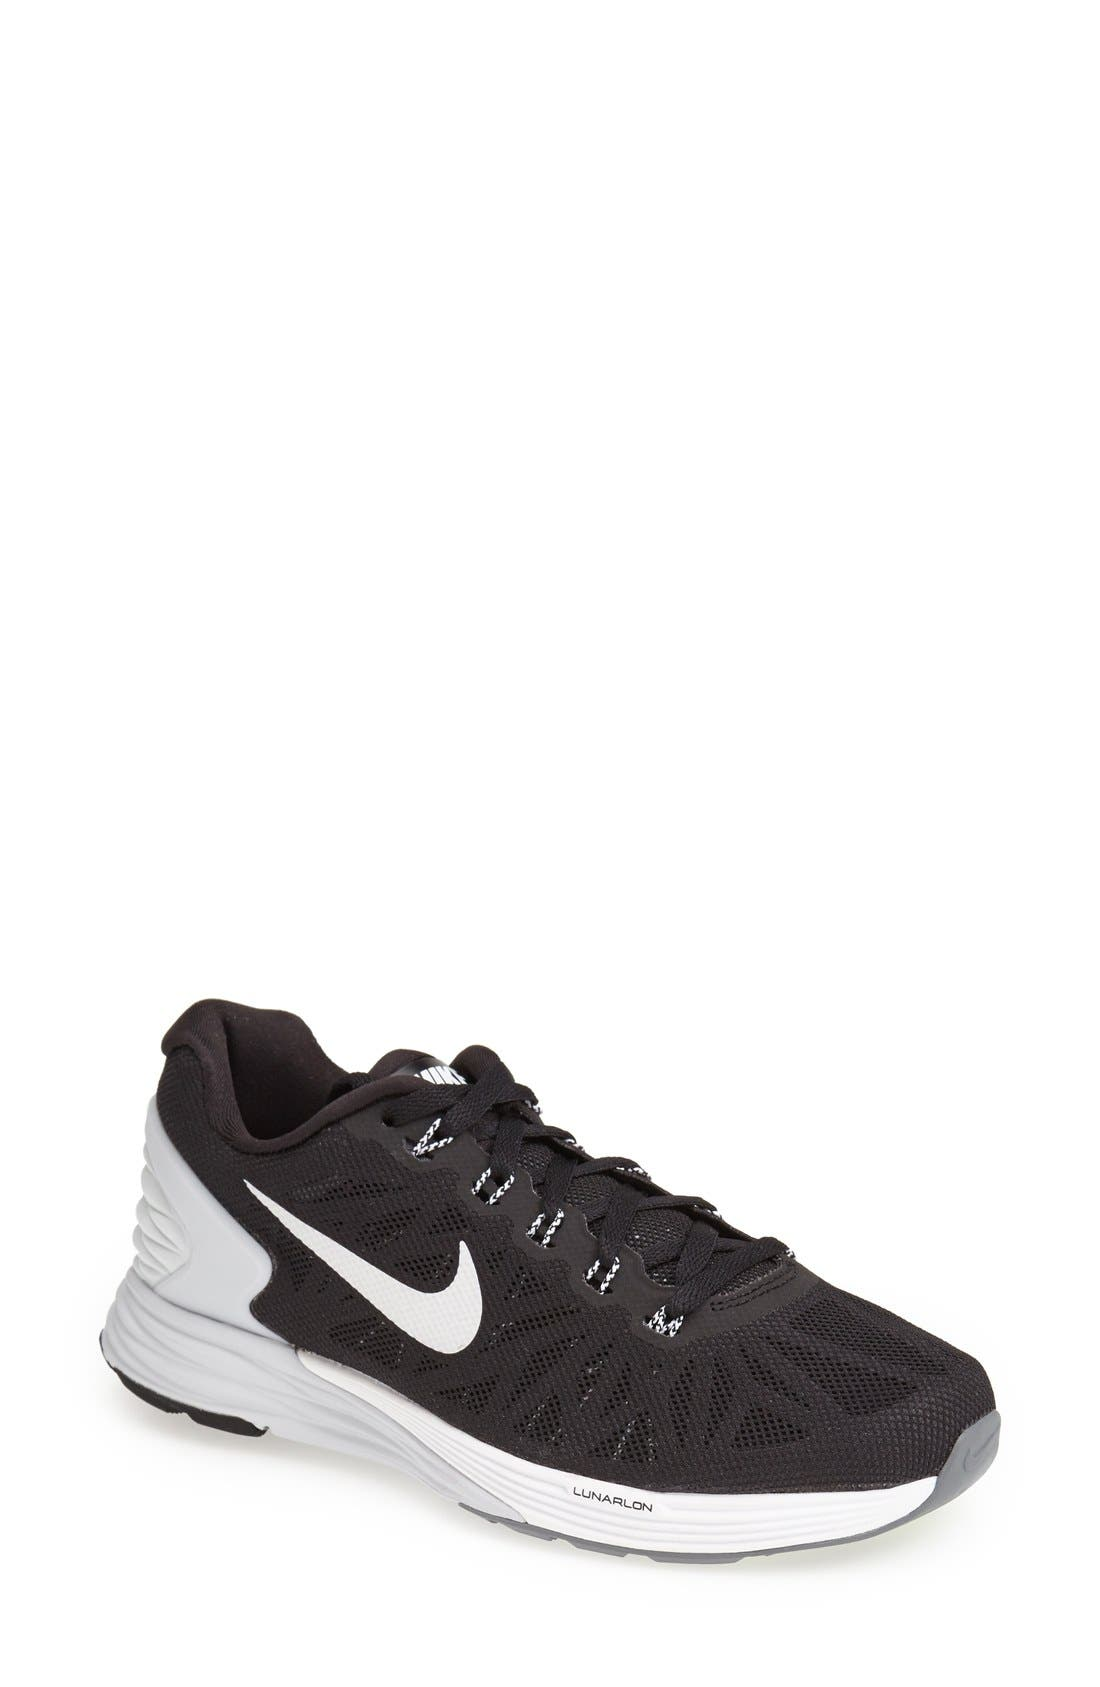 Main Image - Nike 'Lunarglide 6' Running Shoe (Women)